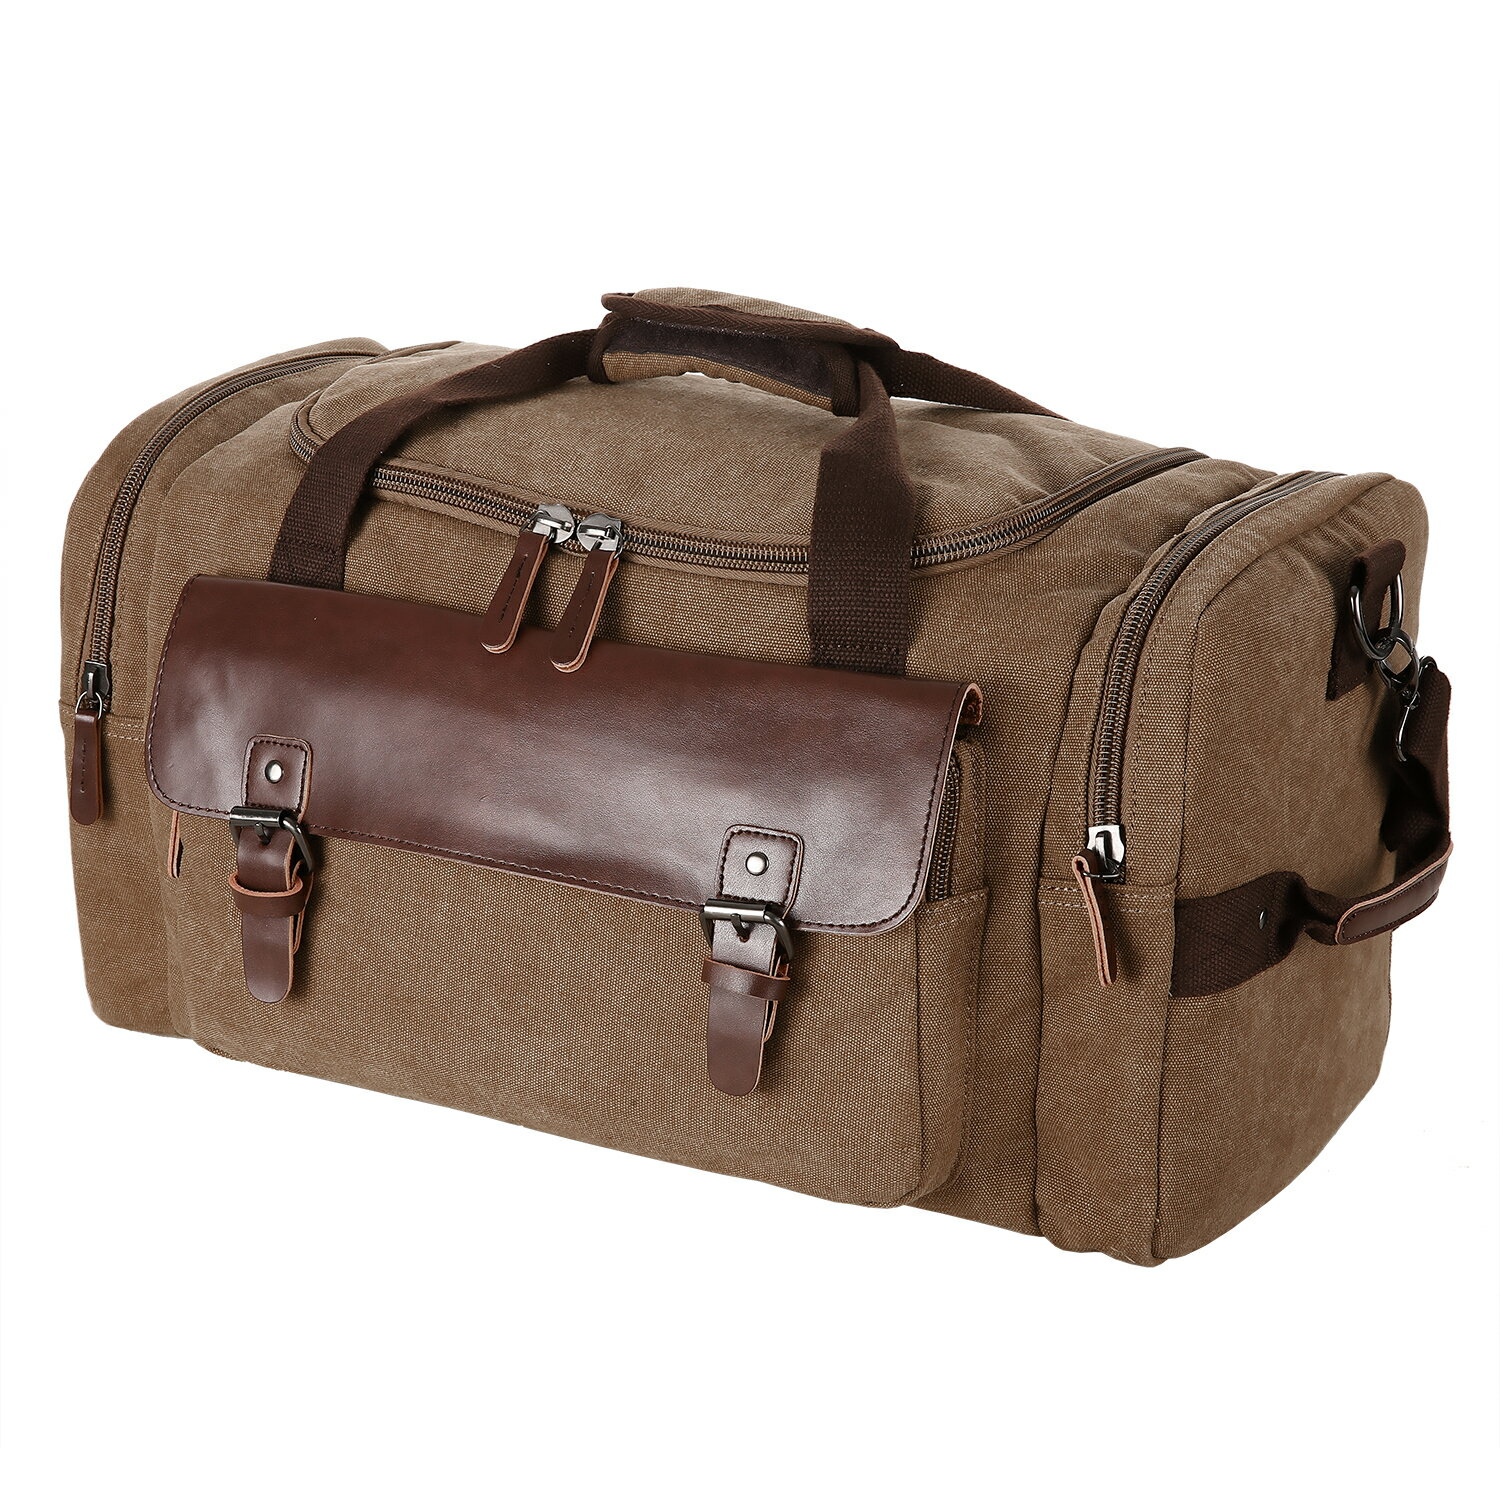 Canvas Duffle Bag Oversized Travel Tote Luggage with Shoulder Strap 1